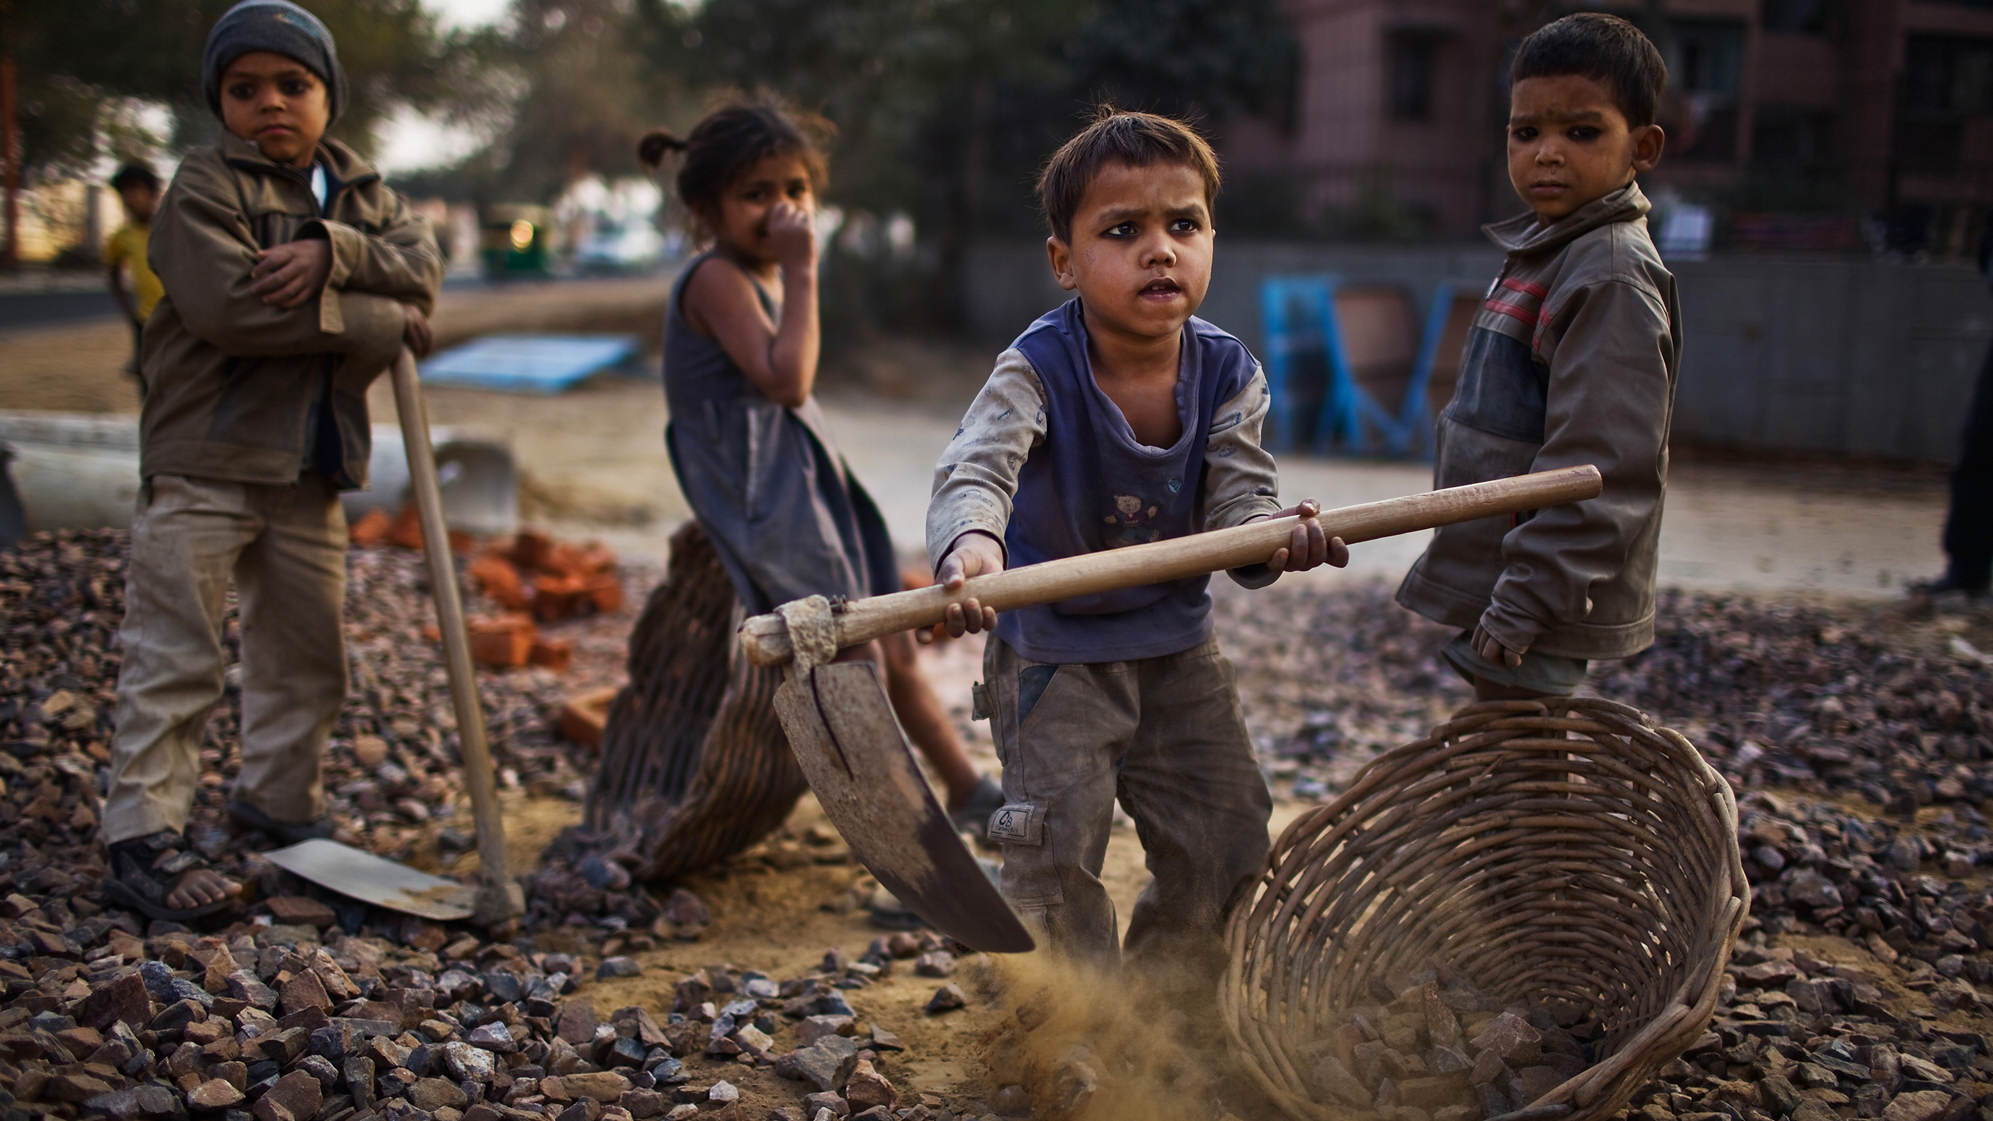 child labour in india cause and remedies World vision australia gives you an insight into child labour 280 million children in the world are involved in child labour, india is home to the largest.